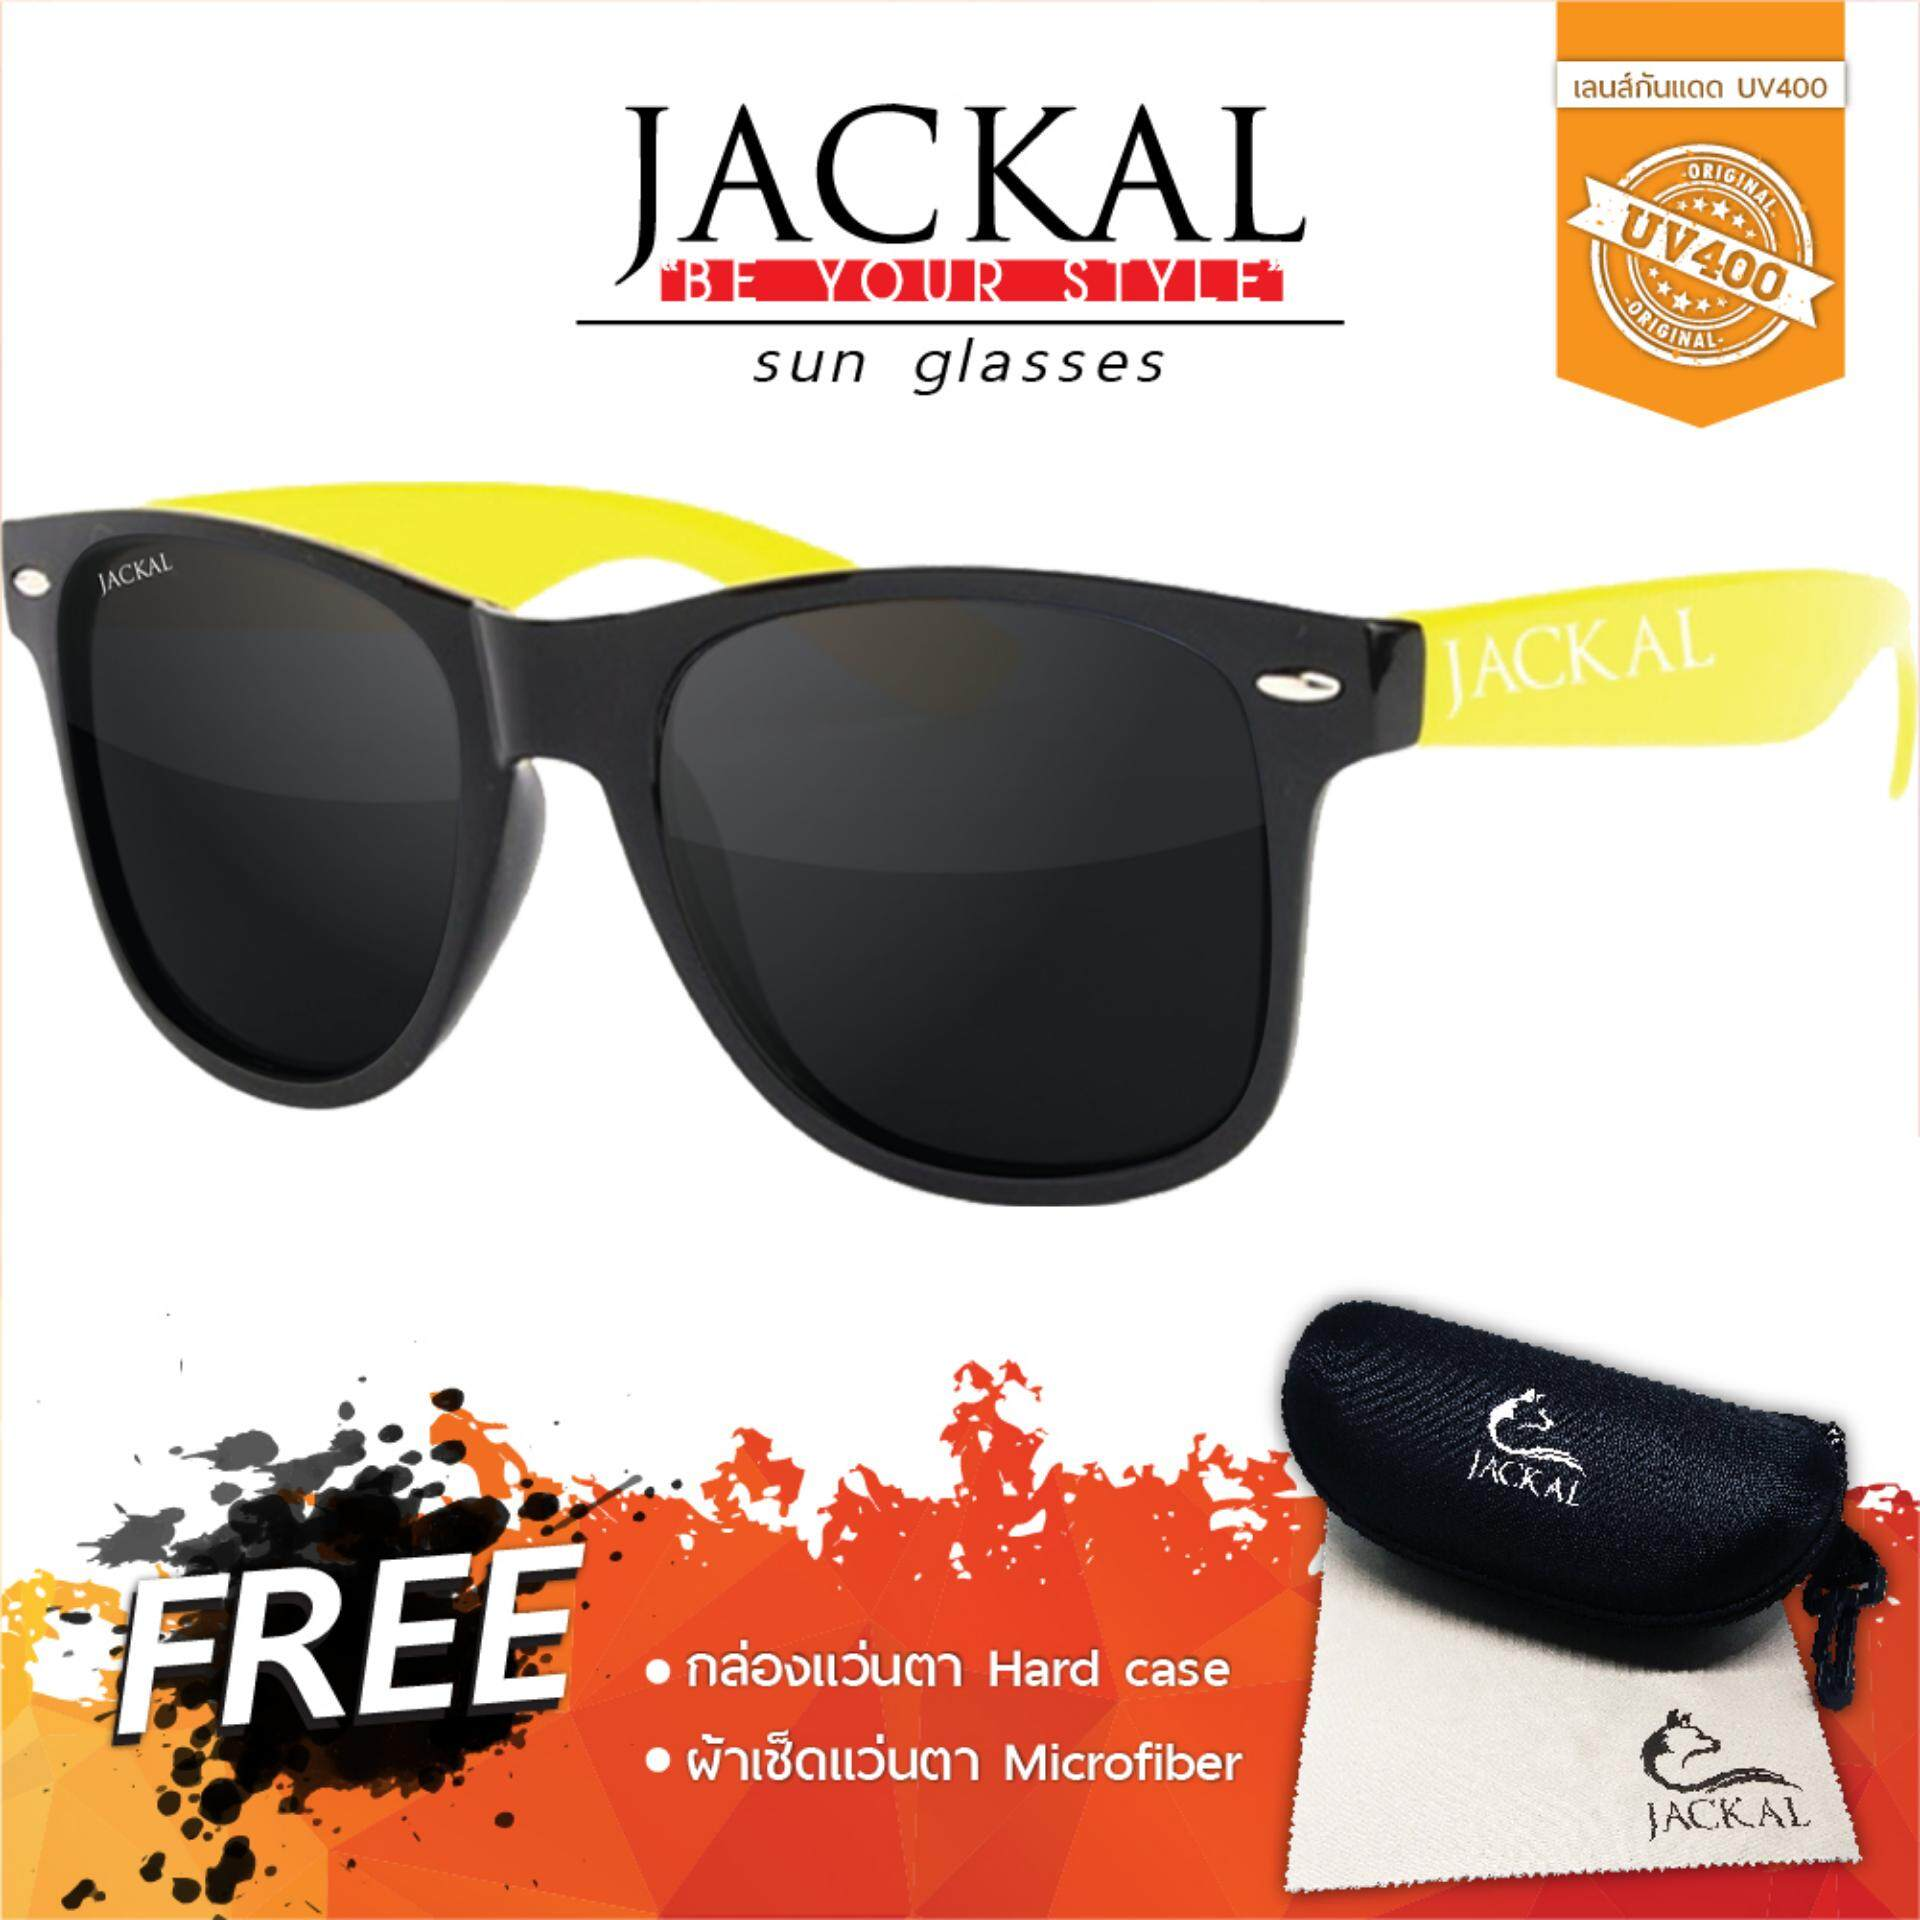 JACKAL SUNGLASSES แว่นตากันแดด รุ่น TRAVELLER JS076 (Black/Yellow Arms/Smoke Lens)